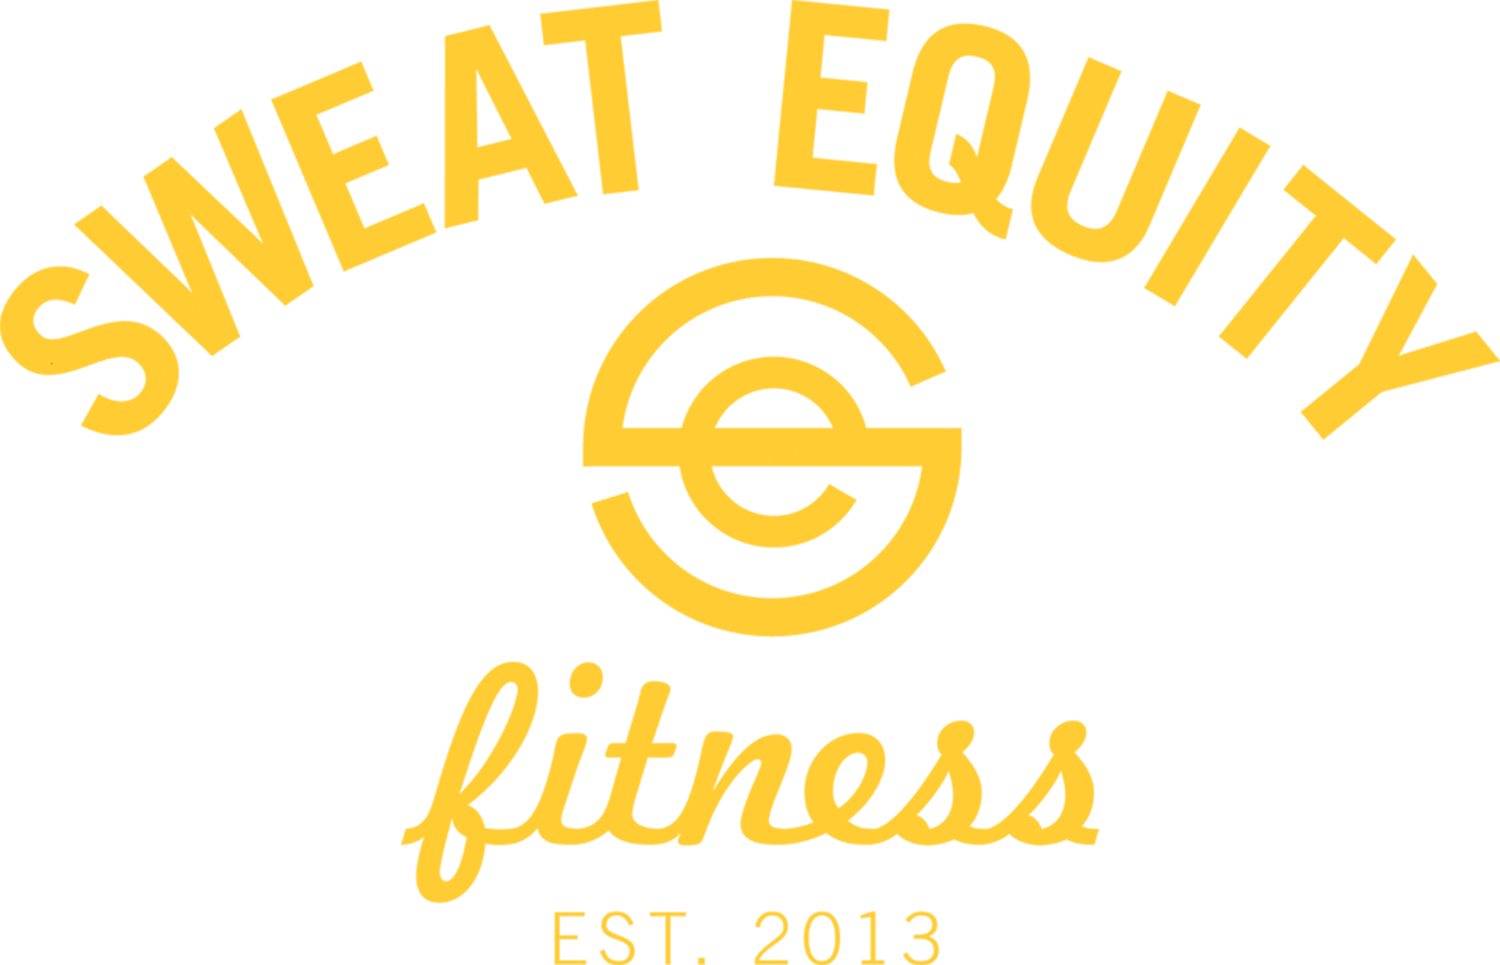 Los Angeles Sweat Equity Fitness